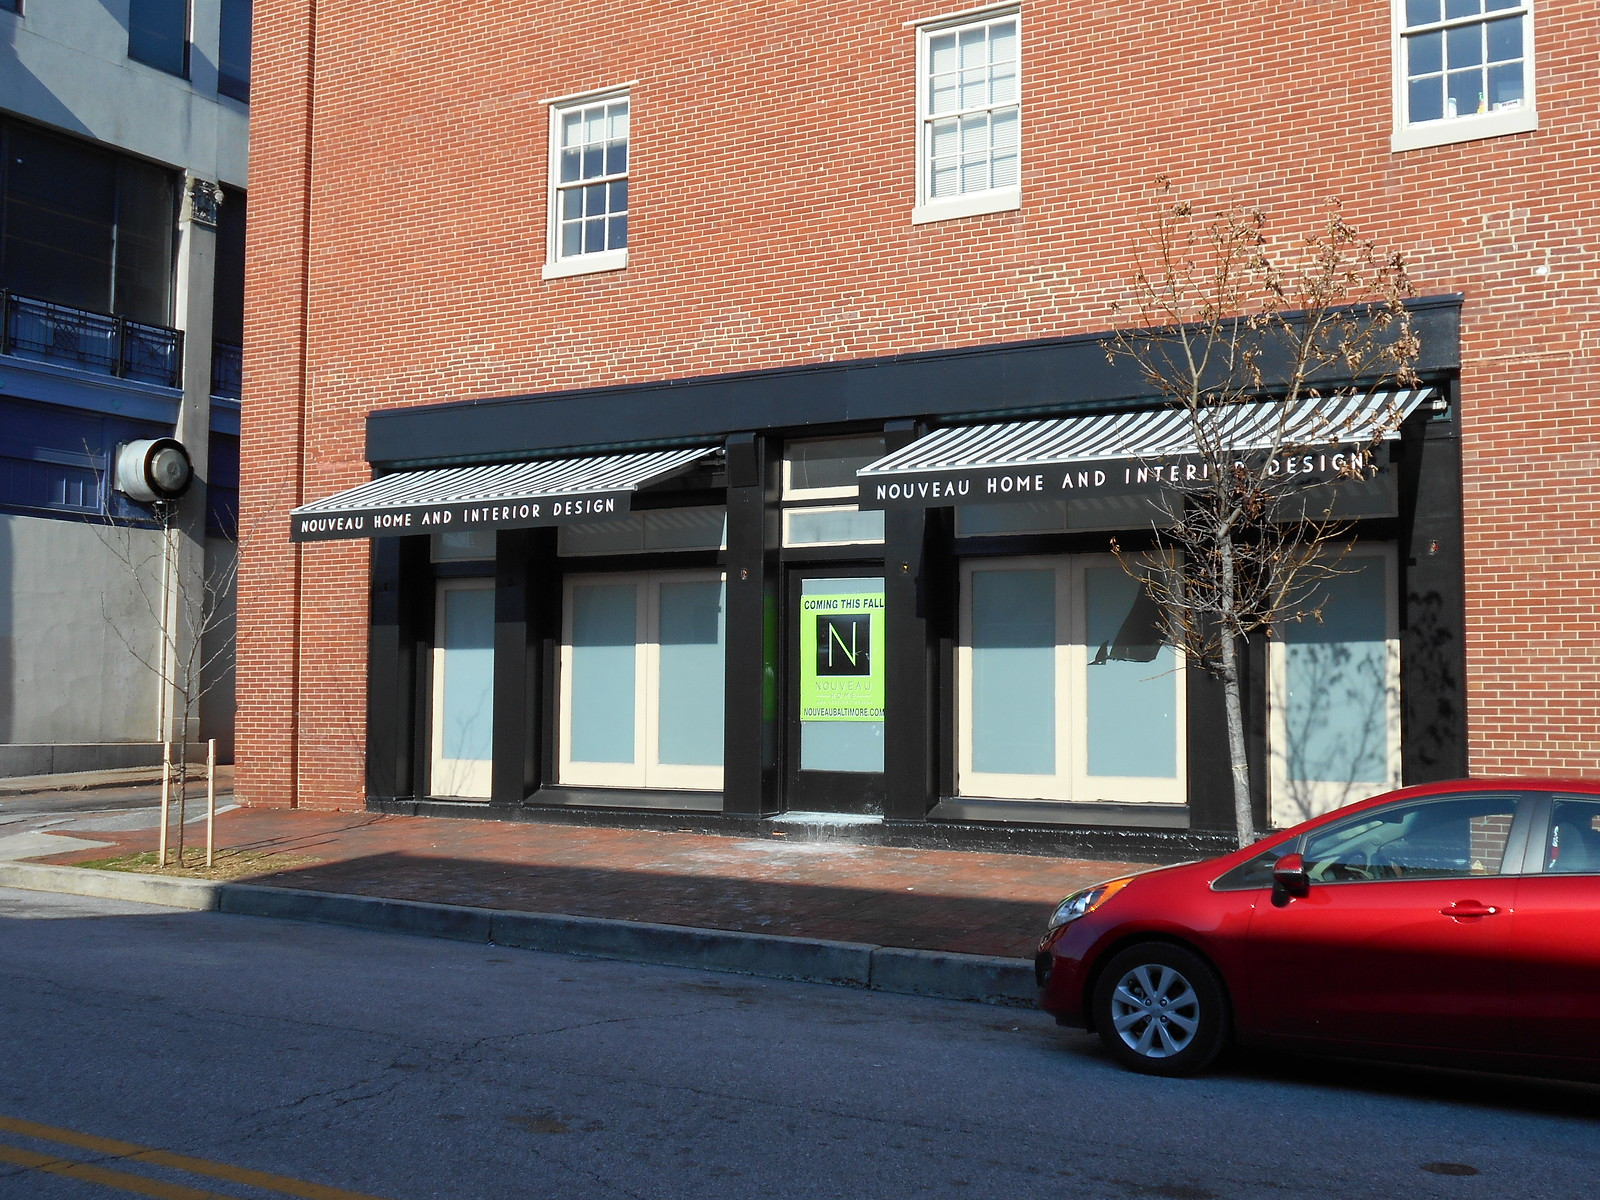 Architectural-Retractable -Awnings as Storefront